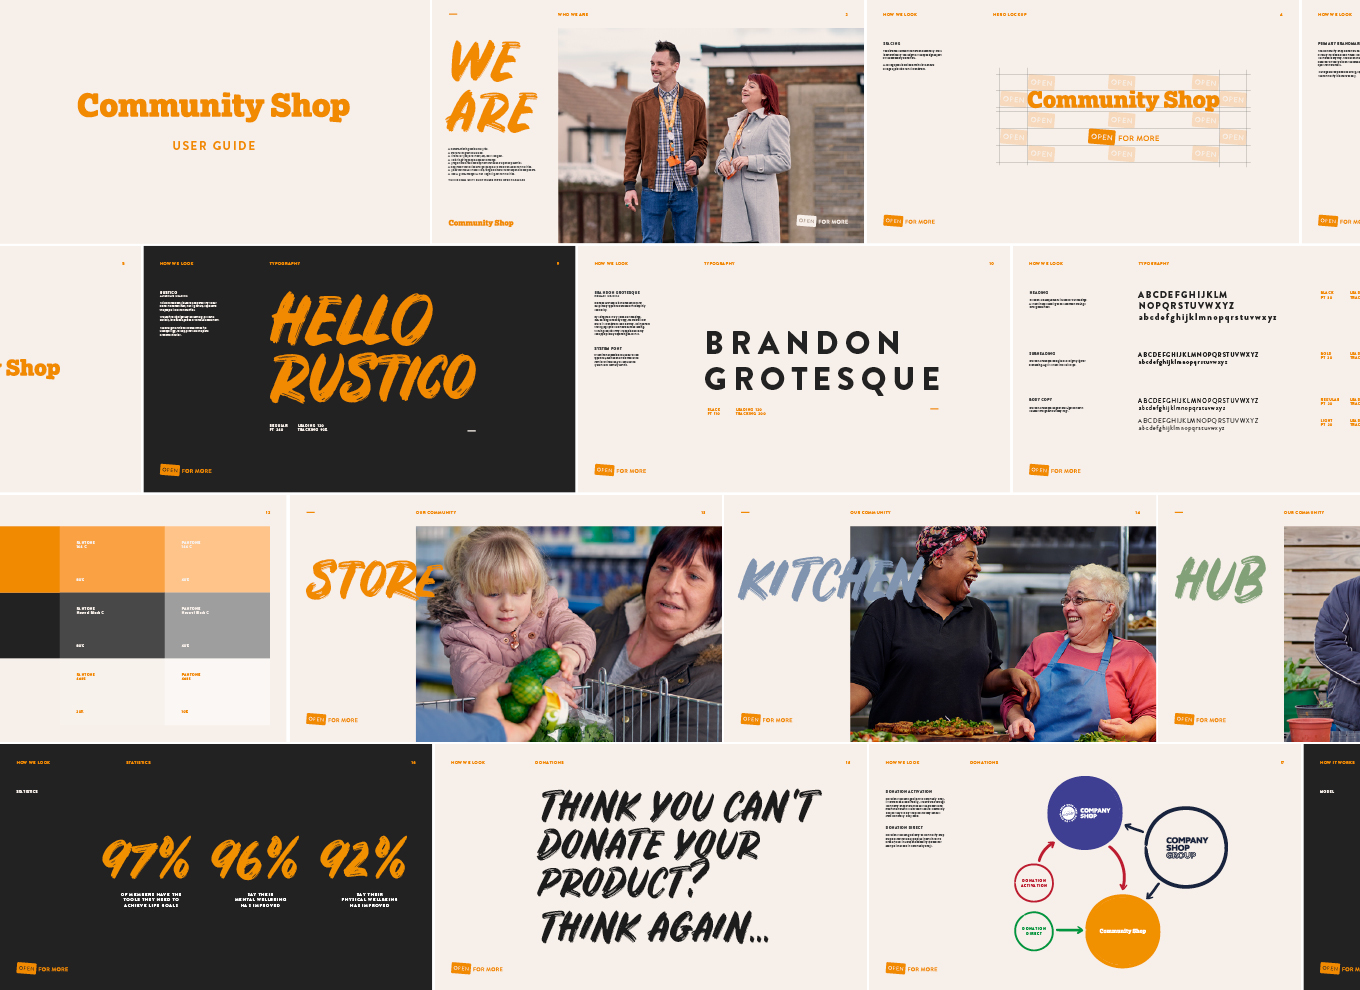 Community Shop Brand Guidelines